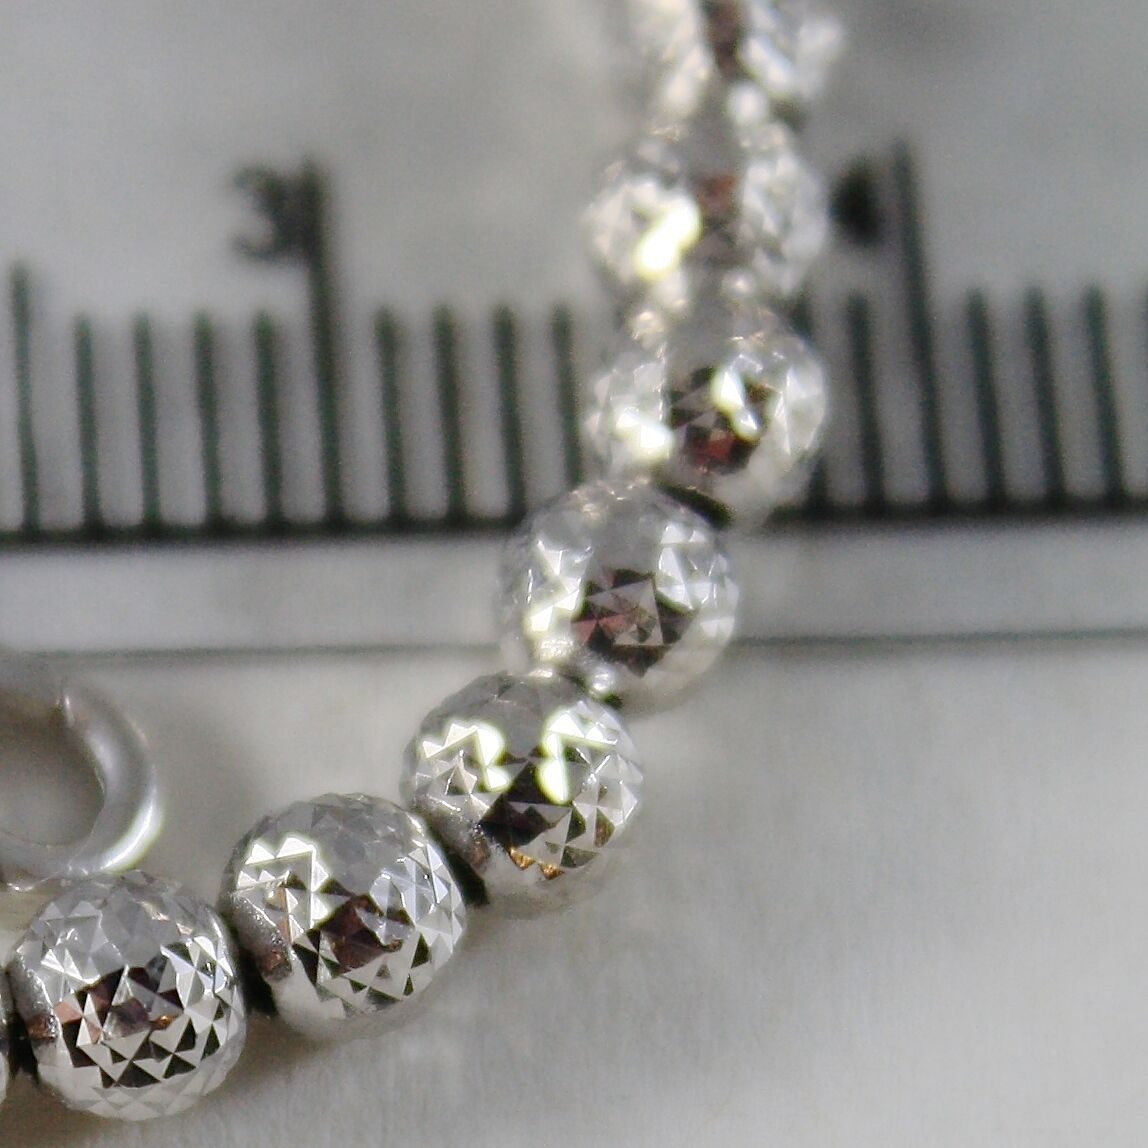 18K WHITE GOLD BRACELET WORKED BALL BALLS SPHERES 4 MM, 7.50 IN MADE IN ITALY image 2